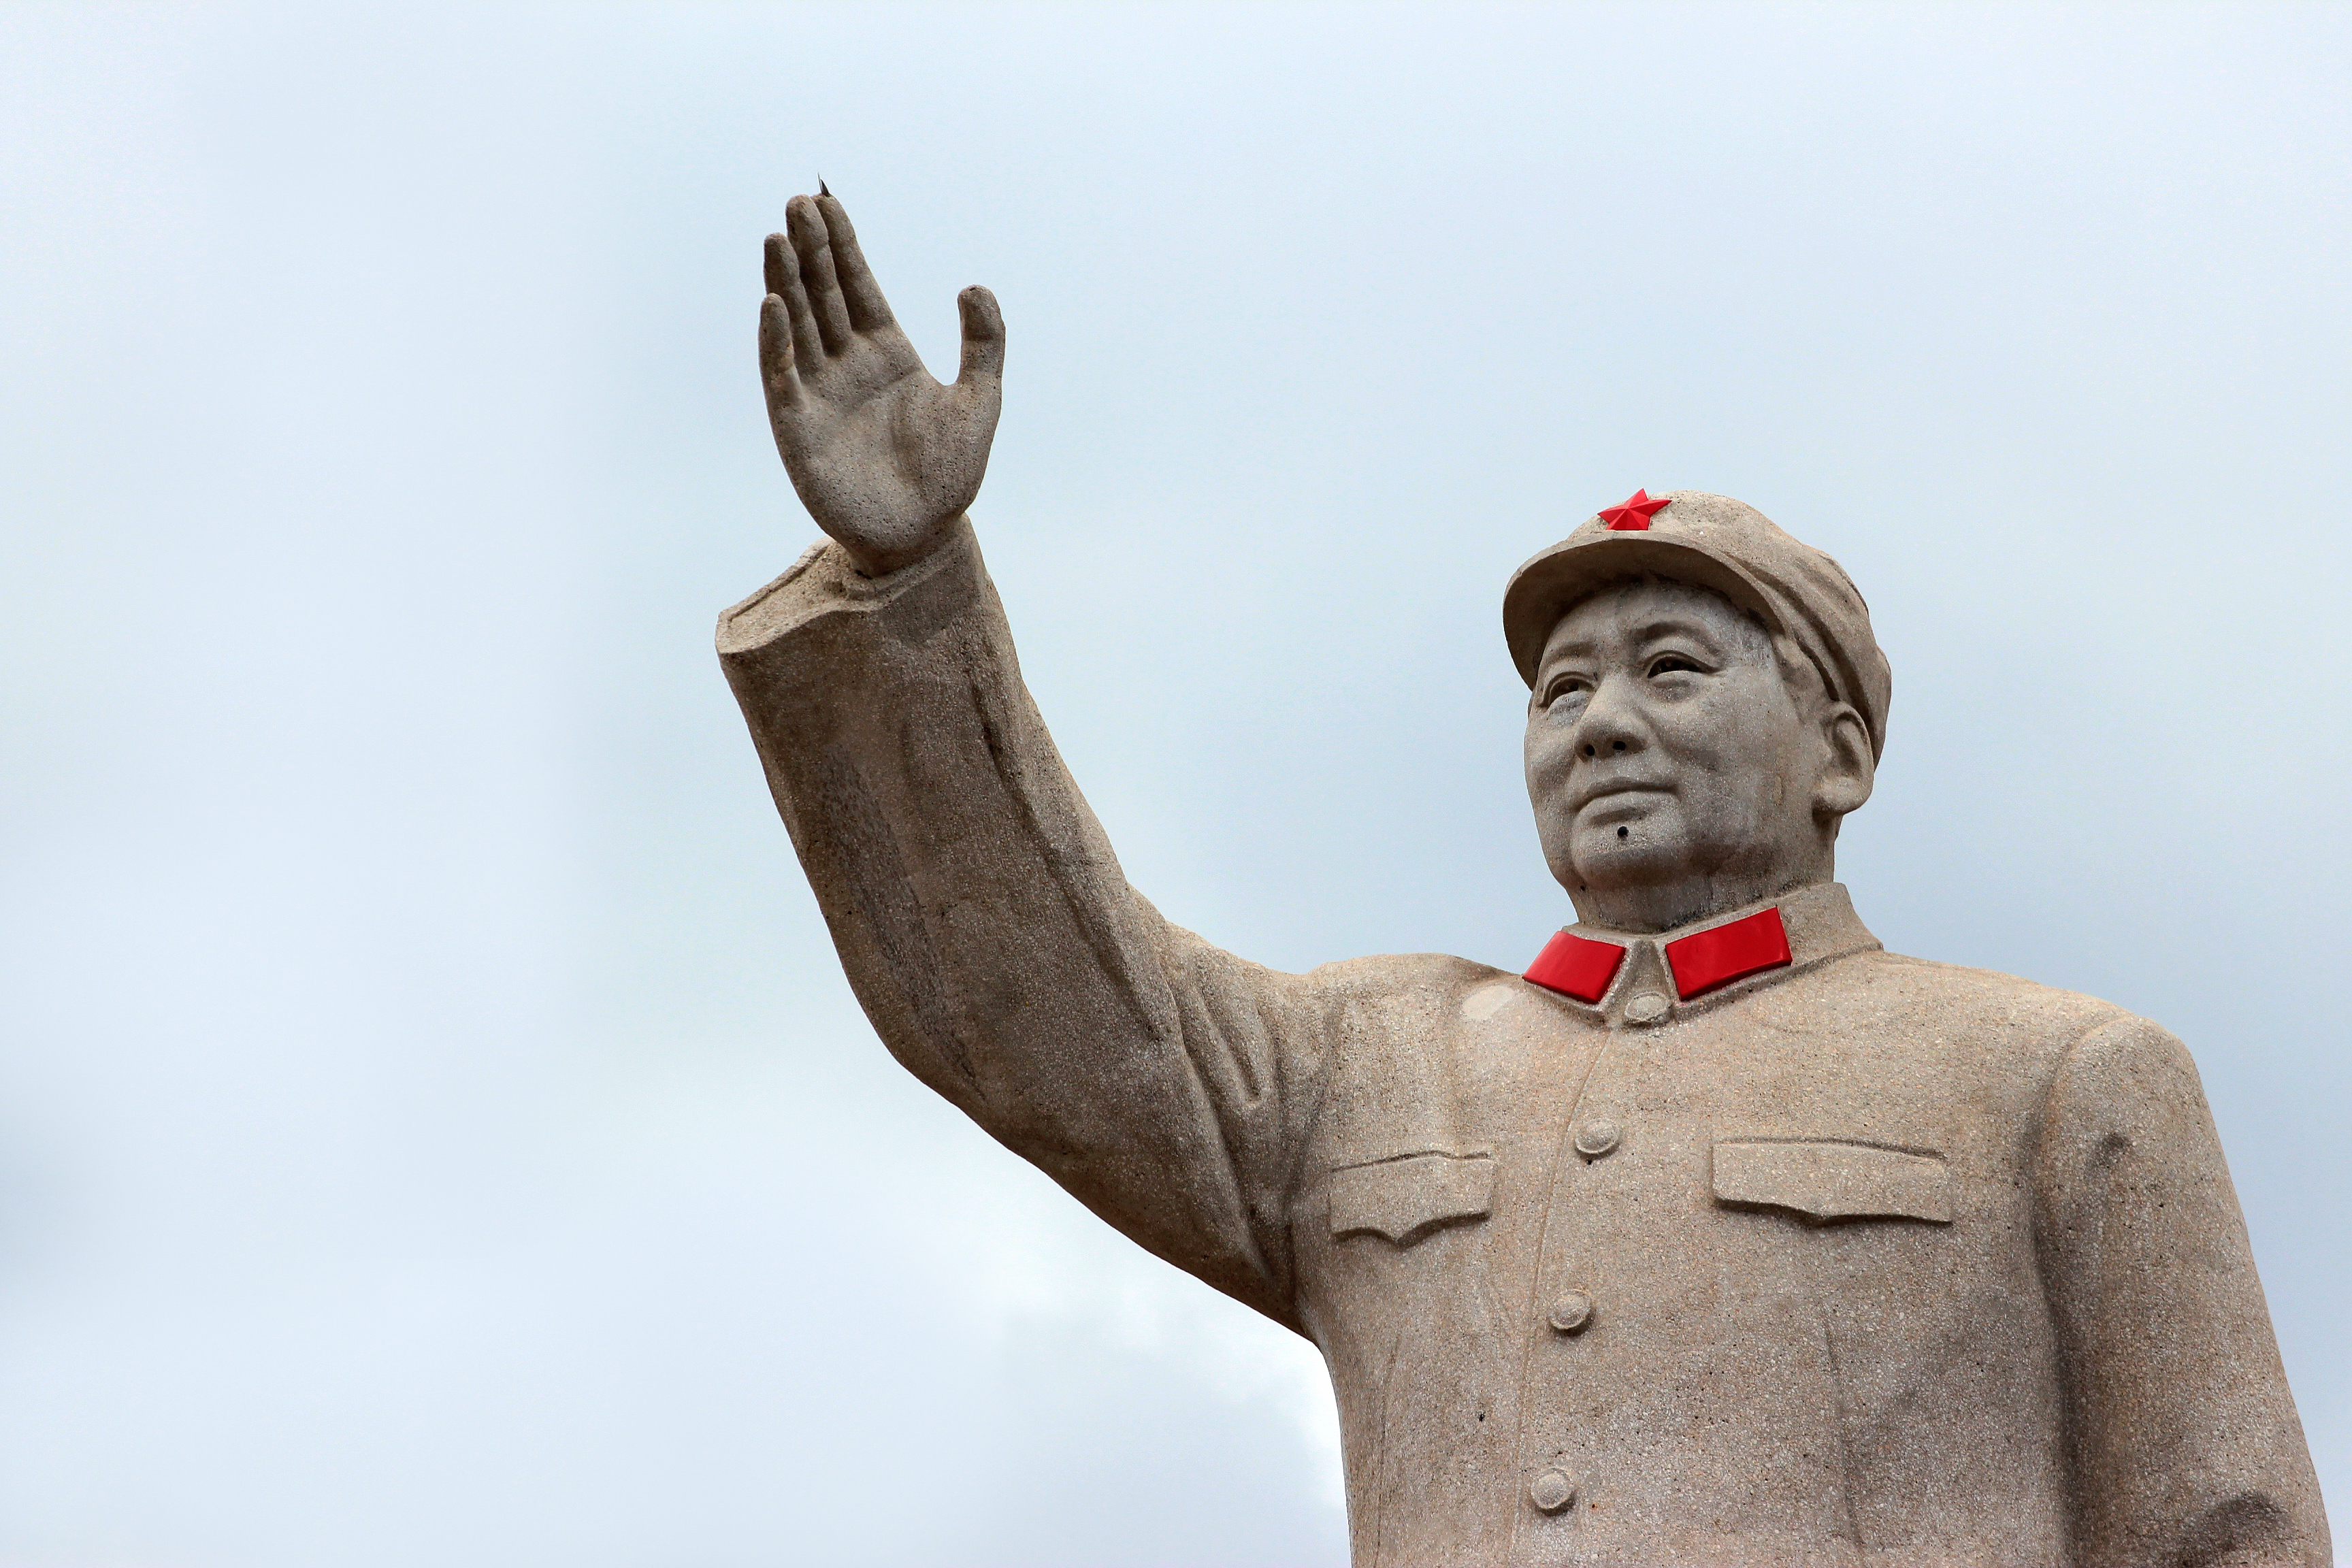 """Mao's declaration at Tian'anmen Square on 1 October 1949 that """"the Chinese people have stood up"""" kick-started the development epic of modern China. (iStock)"""